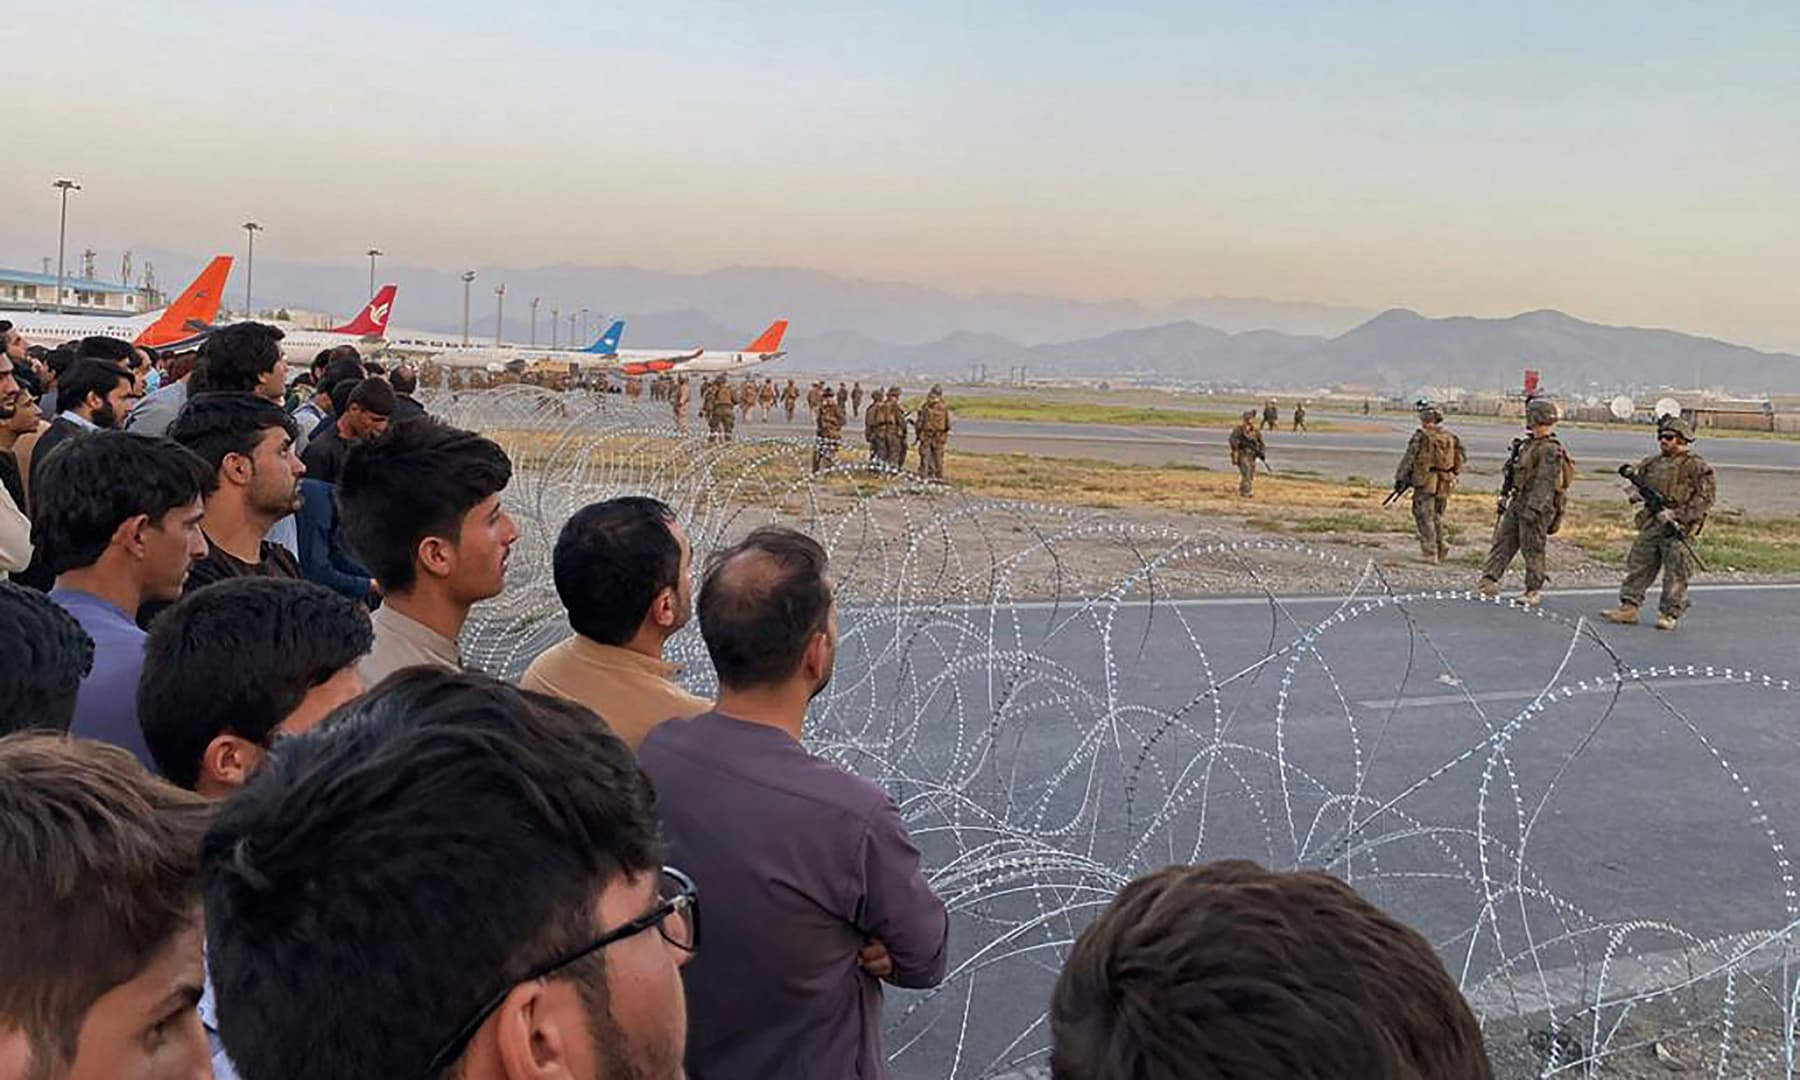 Afghans (L) crowd at the airport as US soldiers stand guard in Kabul, Afghanistan on August 16, 2021. — AFP